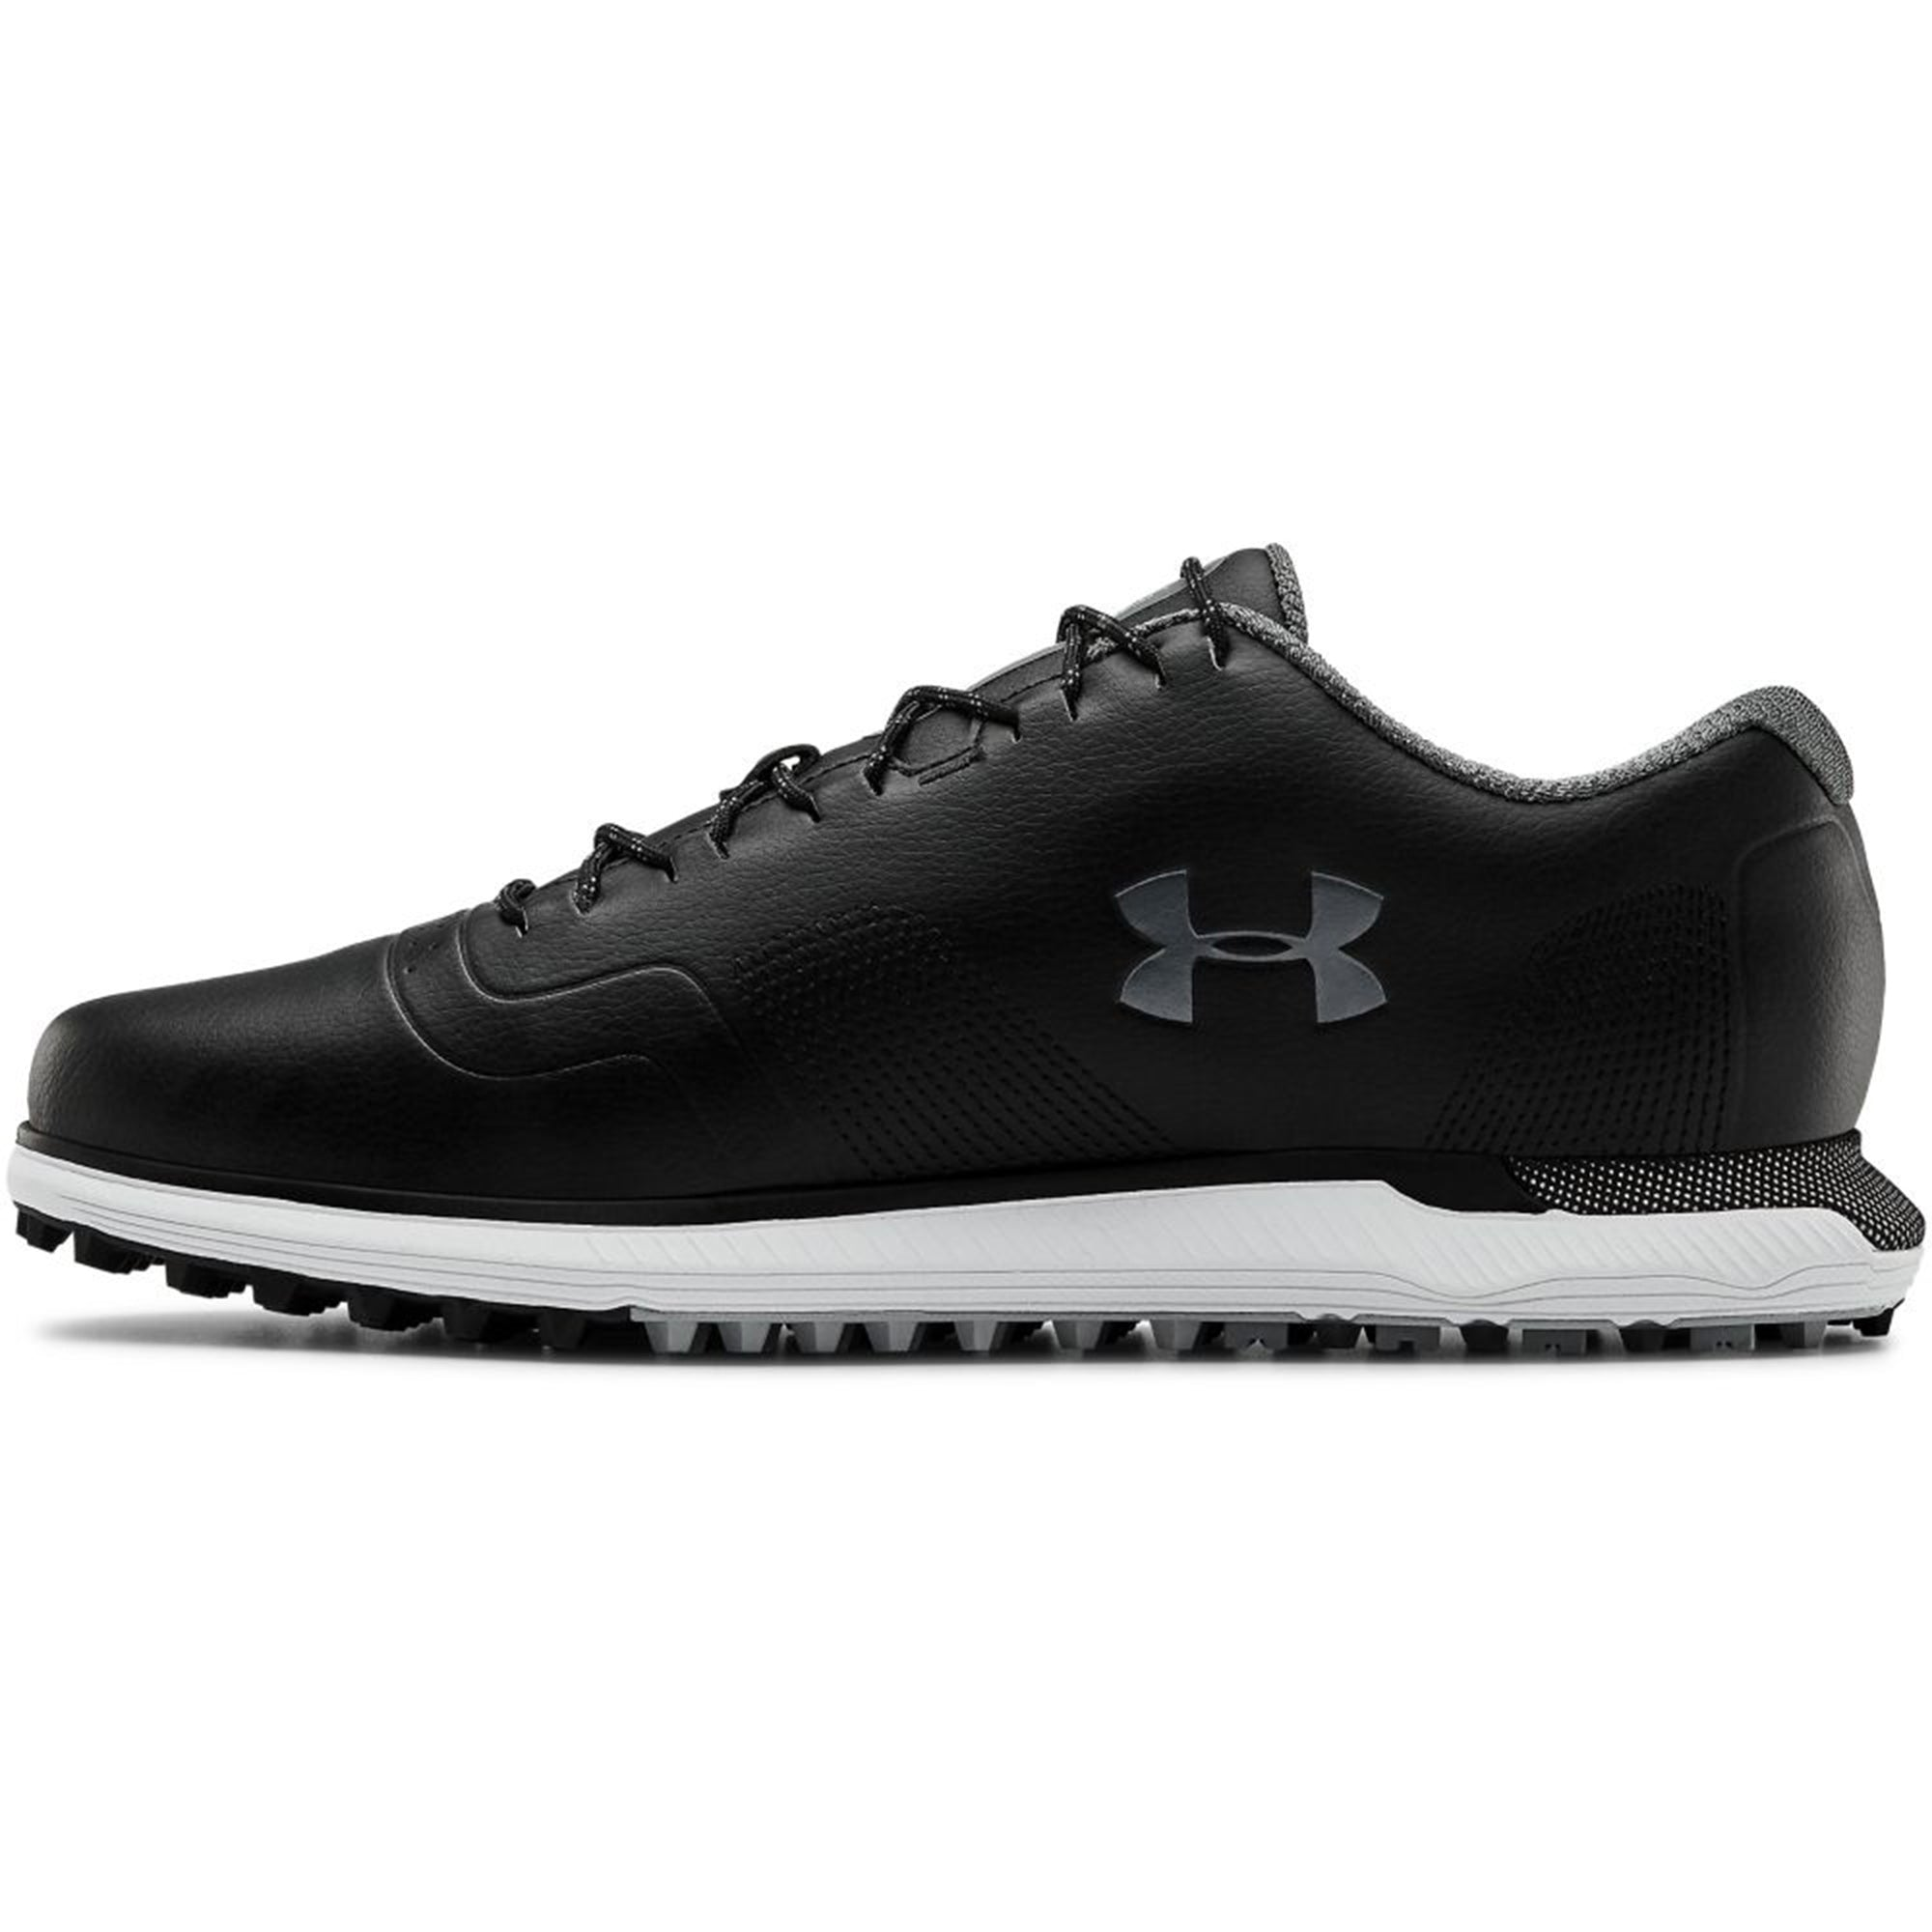 Under Armour HOVR Fade SL E Golf Shoes 3023842